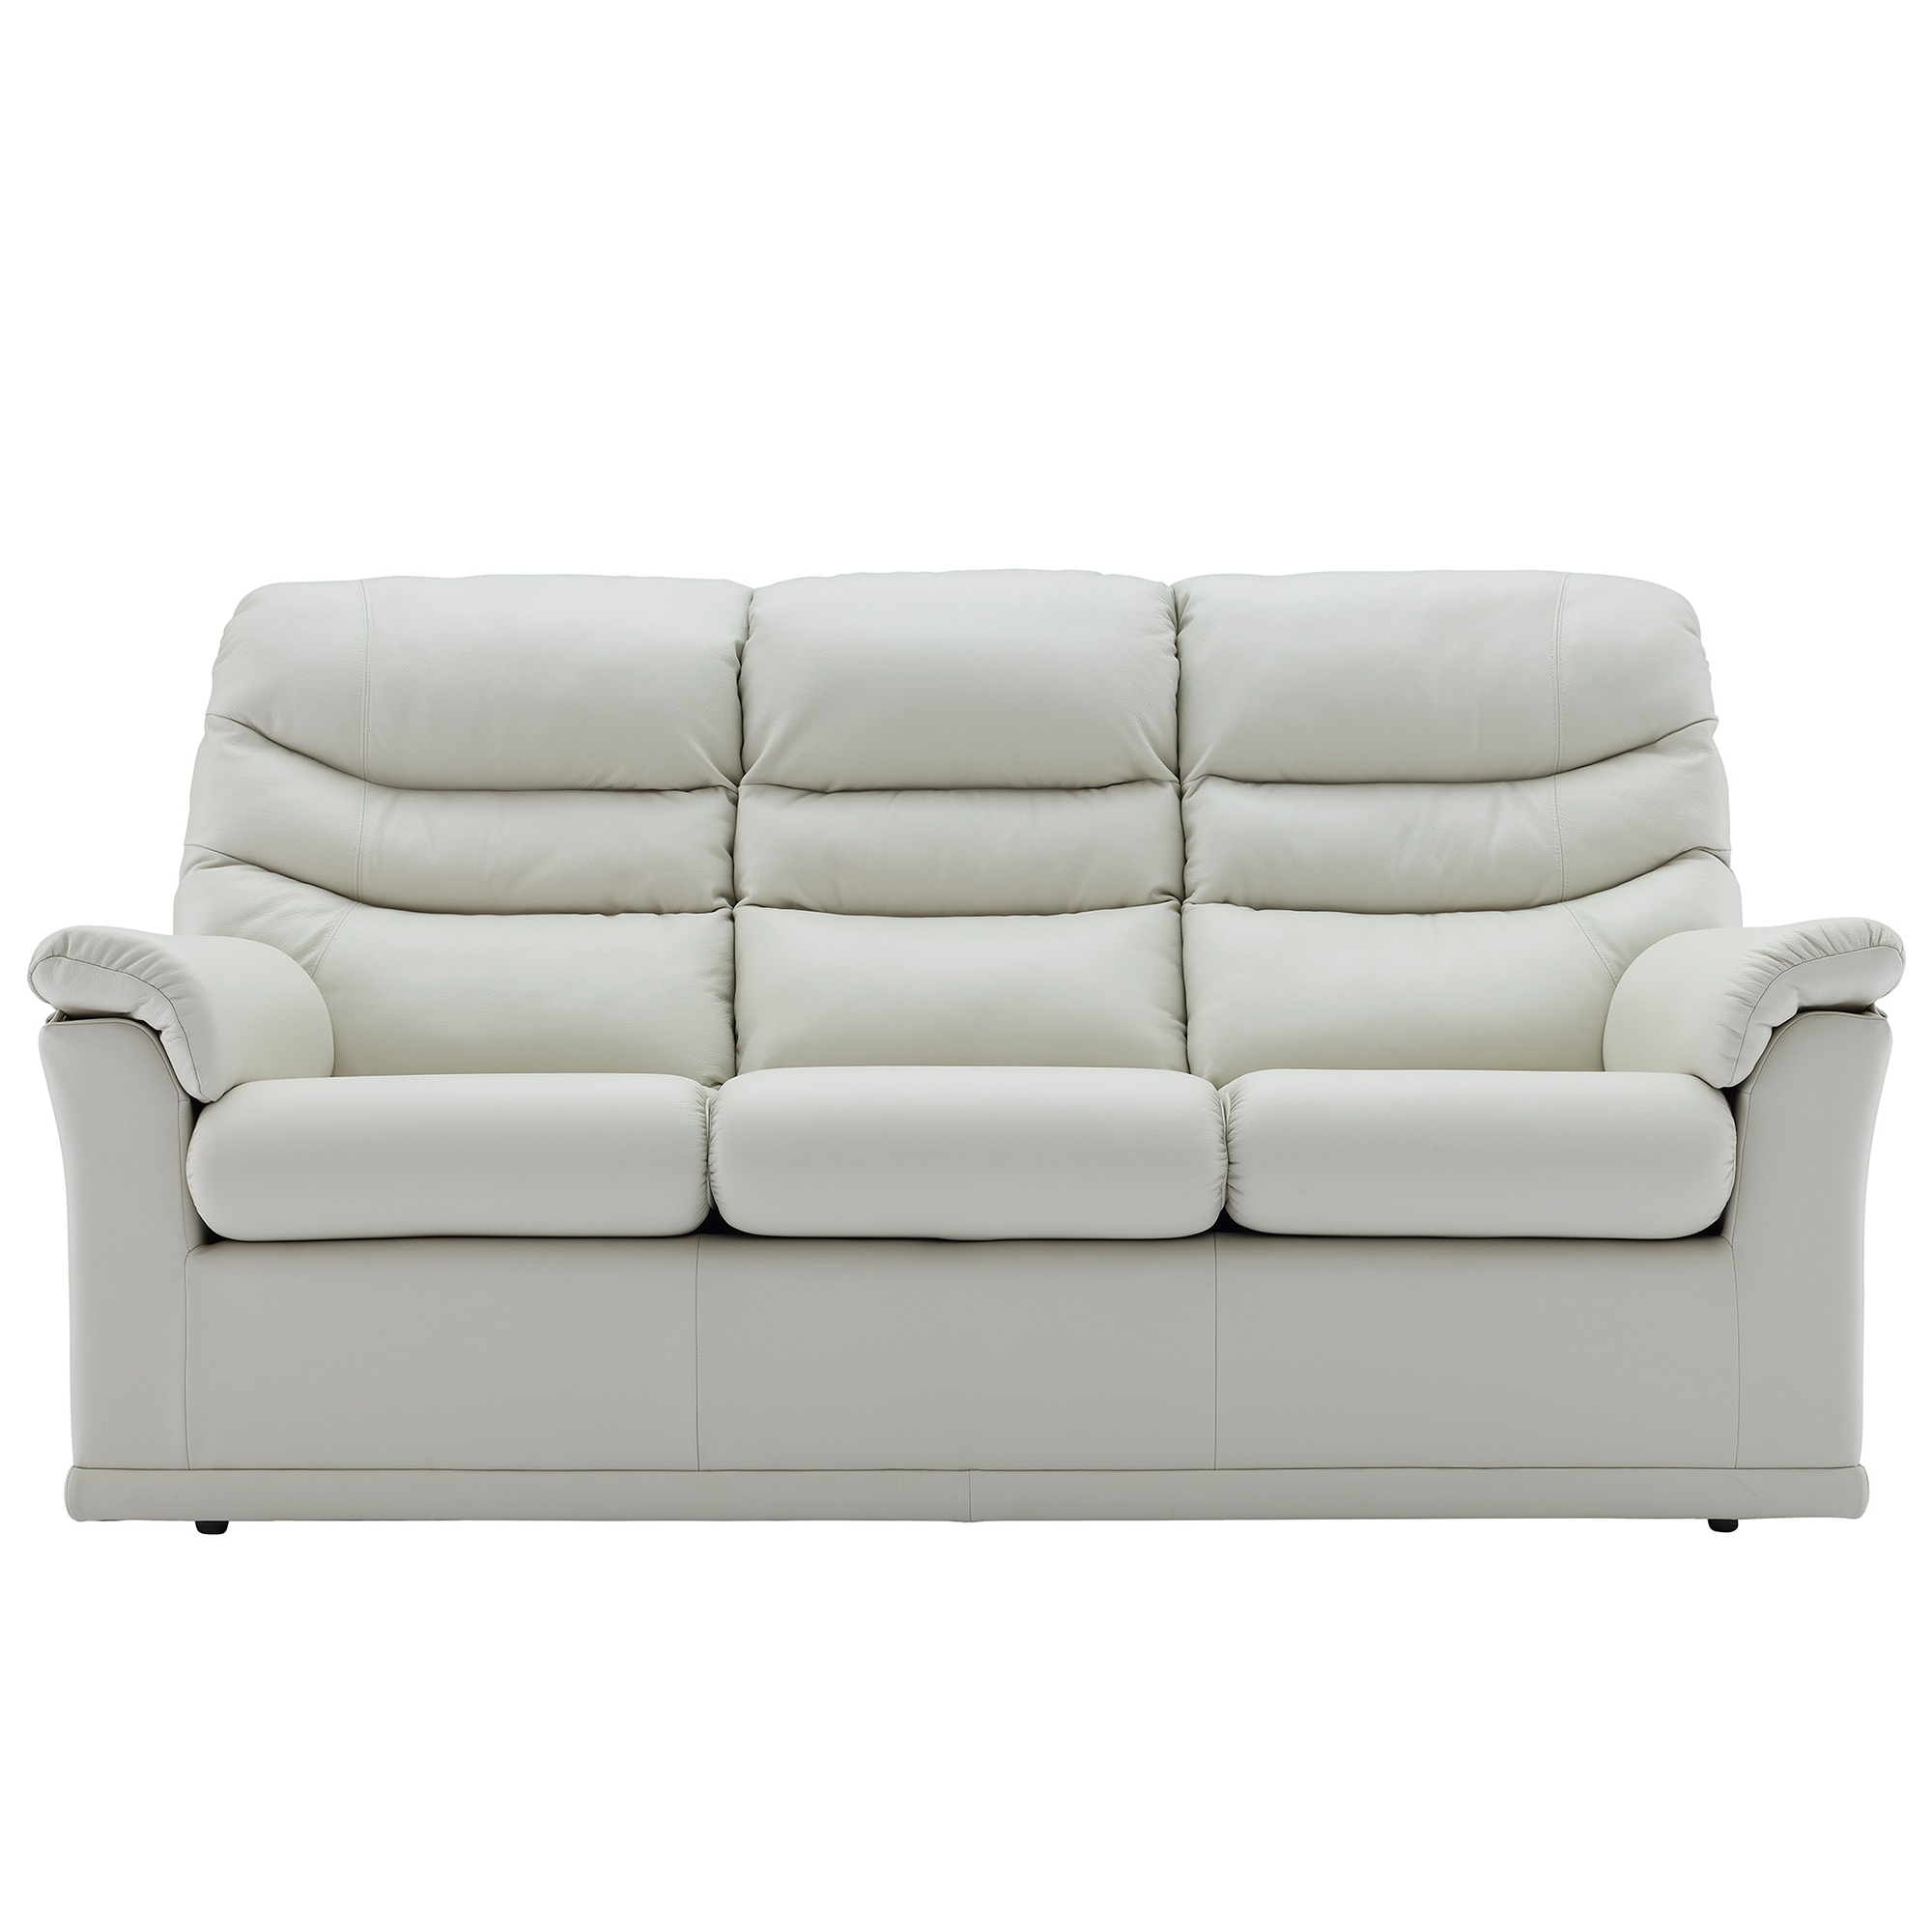 G Plan Malvern 3 Seater Sofa In Leather - G Plan Upholstery - Cookes ...